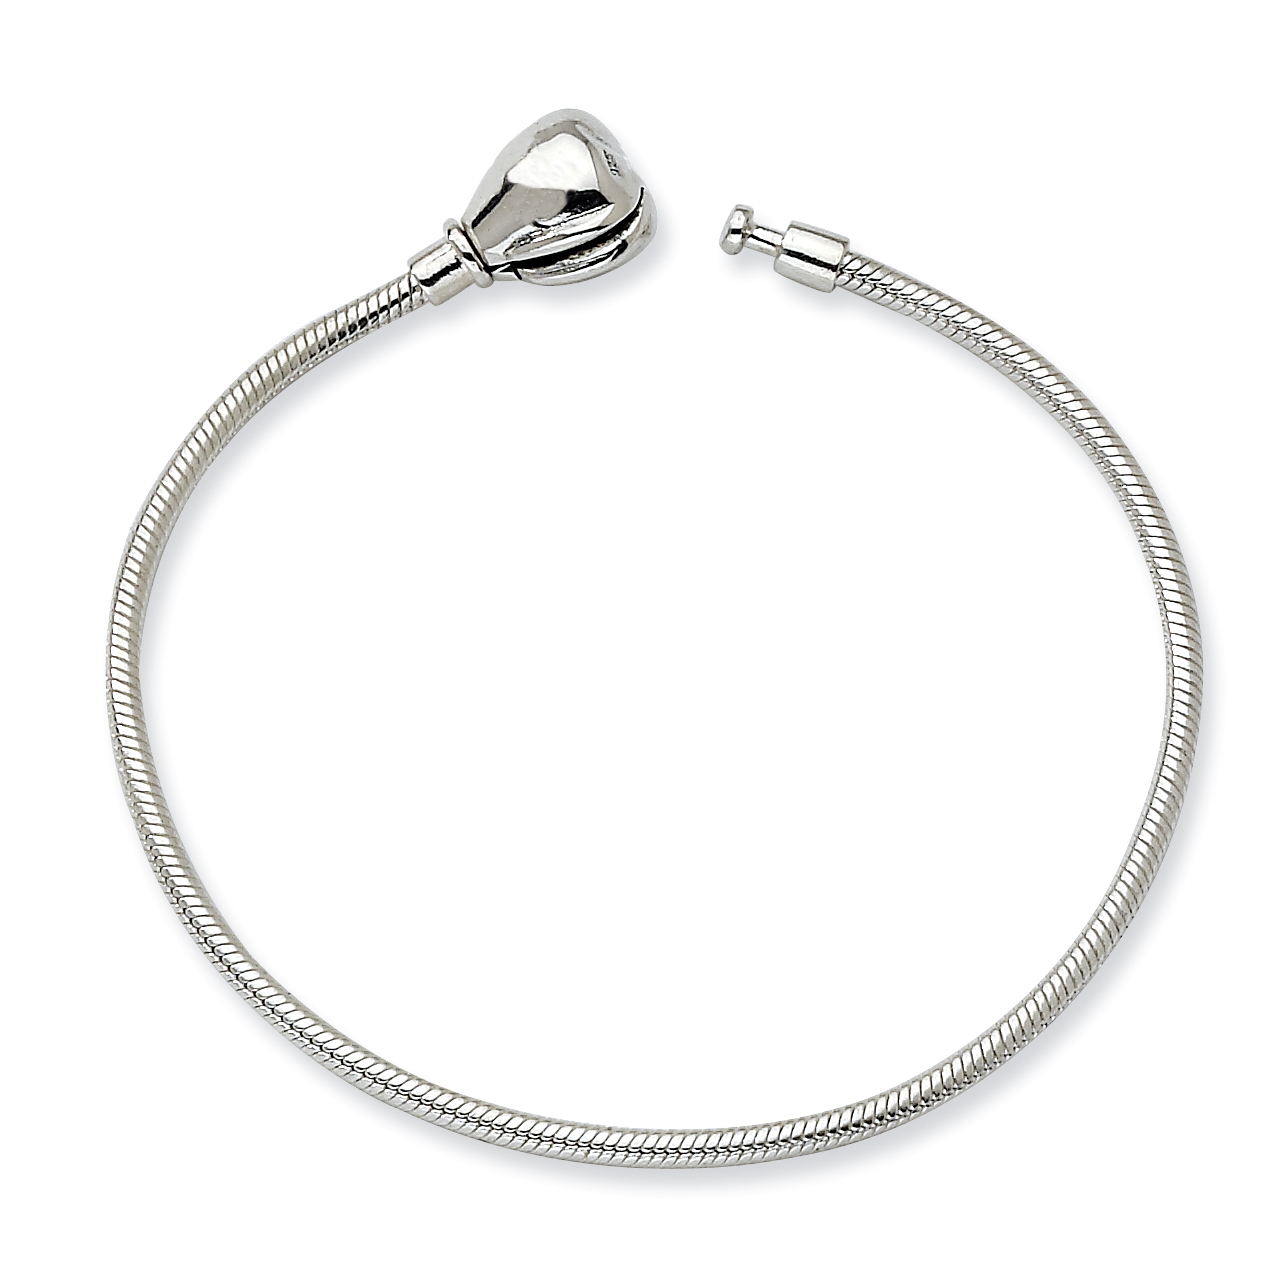 925 Sterling Silver 12cm Reflections Kids Hinged Clasp Bracelet 4.75 Inch Bead Fine Jewelry Gifts For Women For Her - image 2 de 2